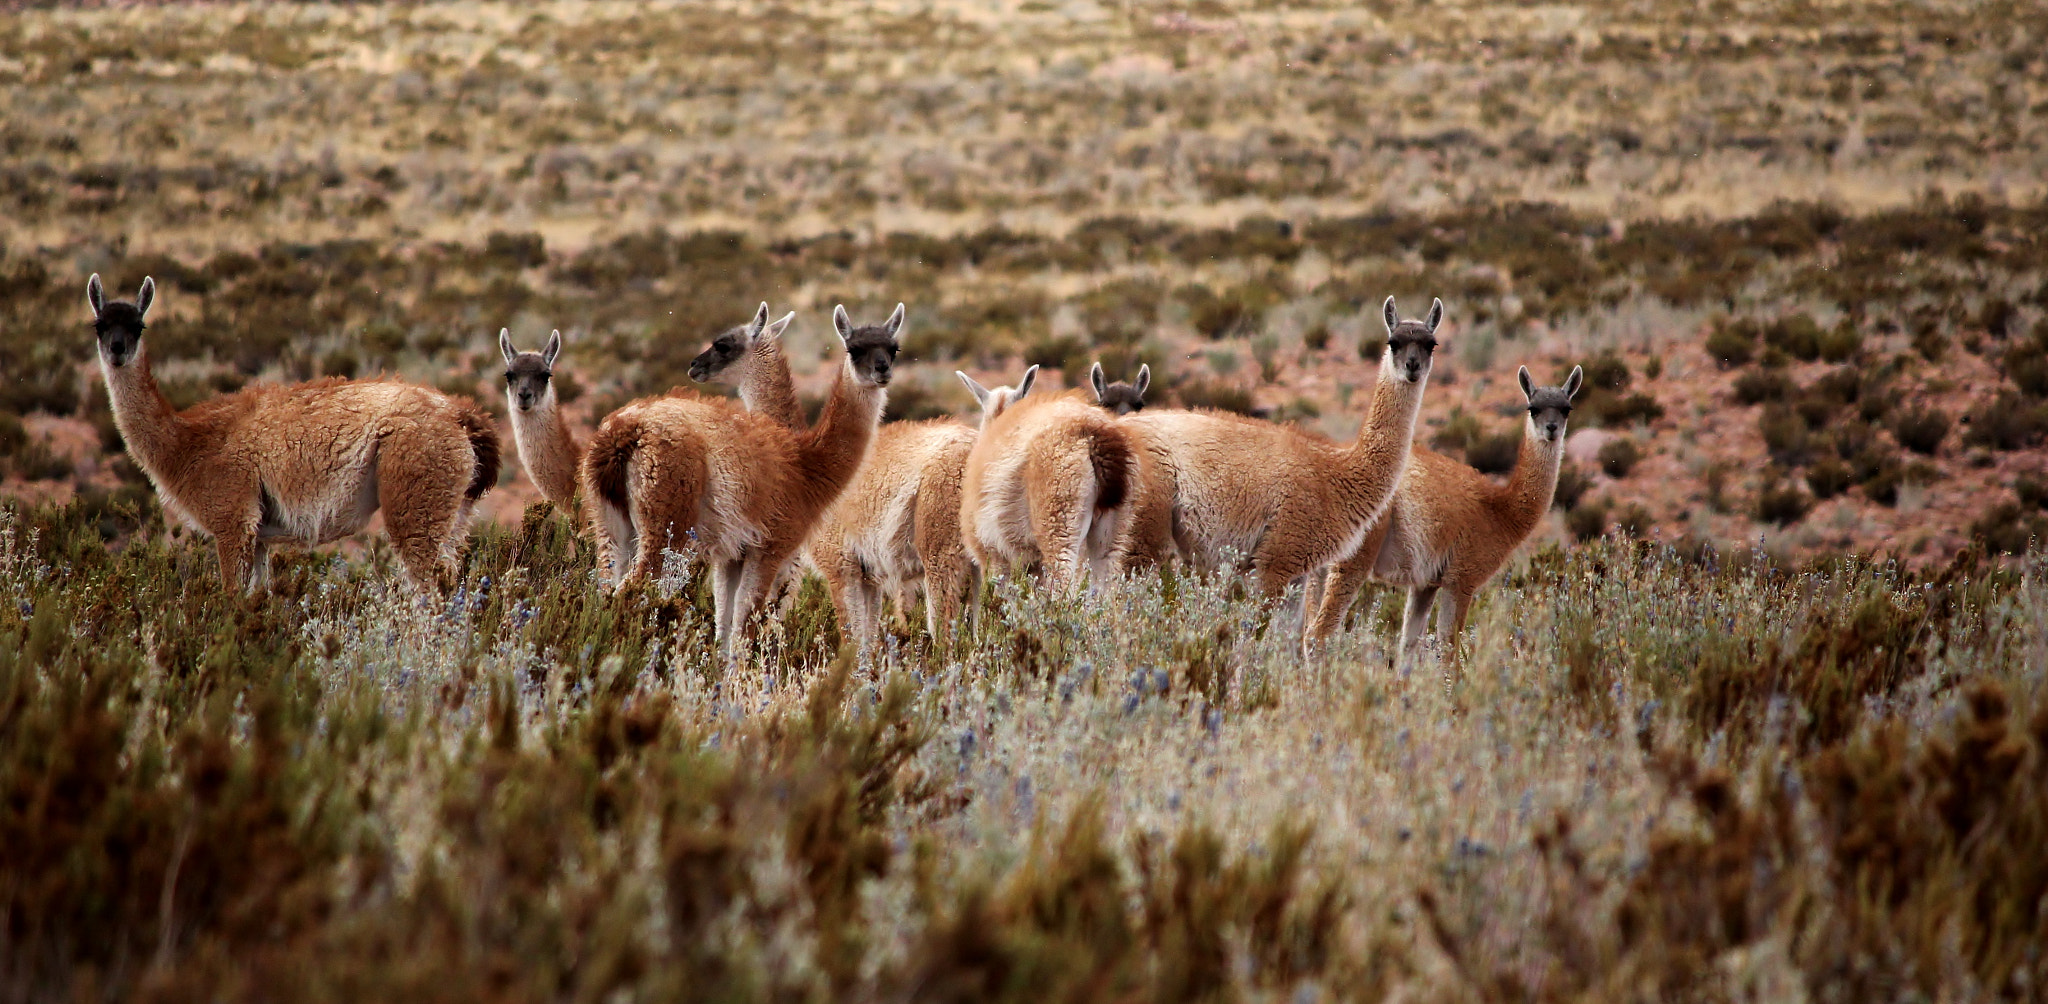 Photograph Guanacos by Christine F. on 500px